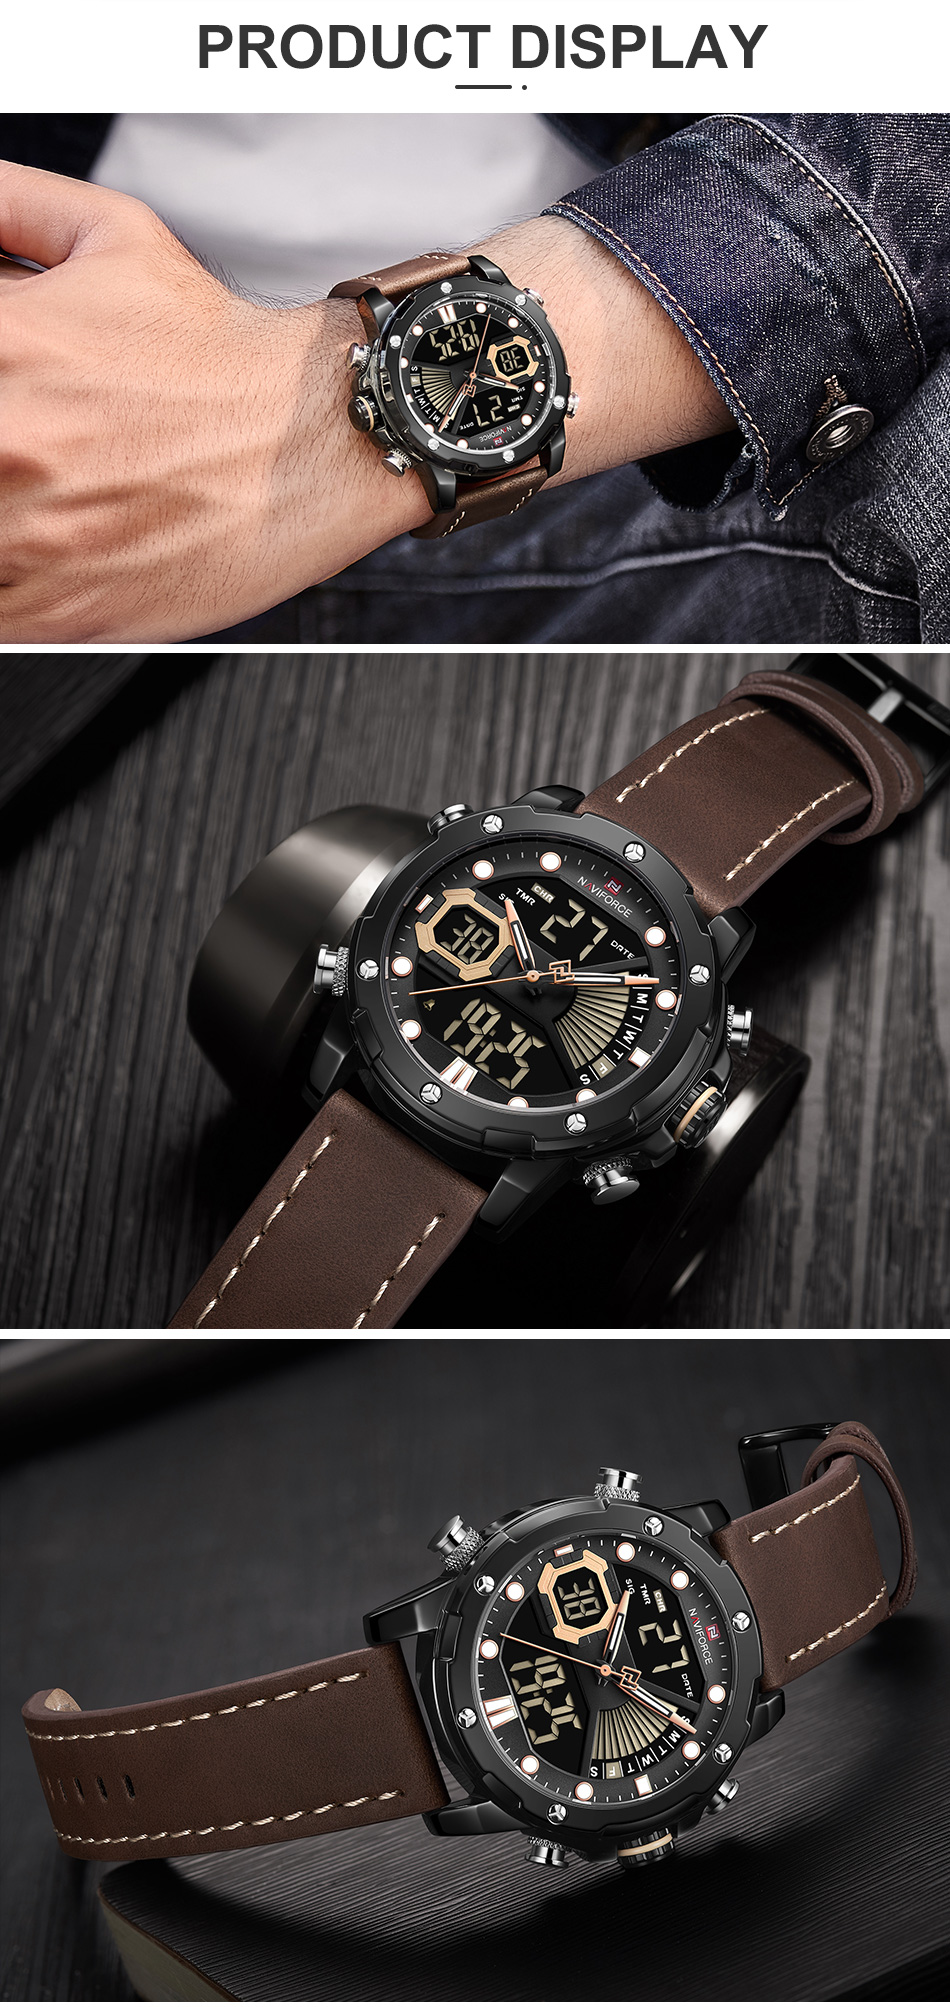 H4af5ef9c285545749dc65cfc493c6de38 NAVIFORCE Men Watch Top Luxury Brand Fashion Sports Wristwatch